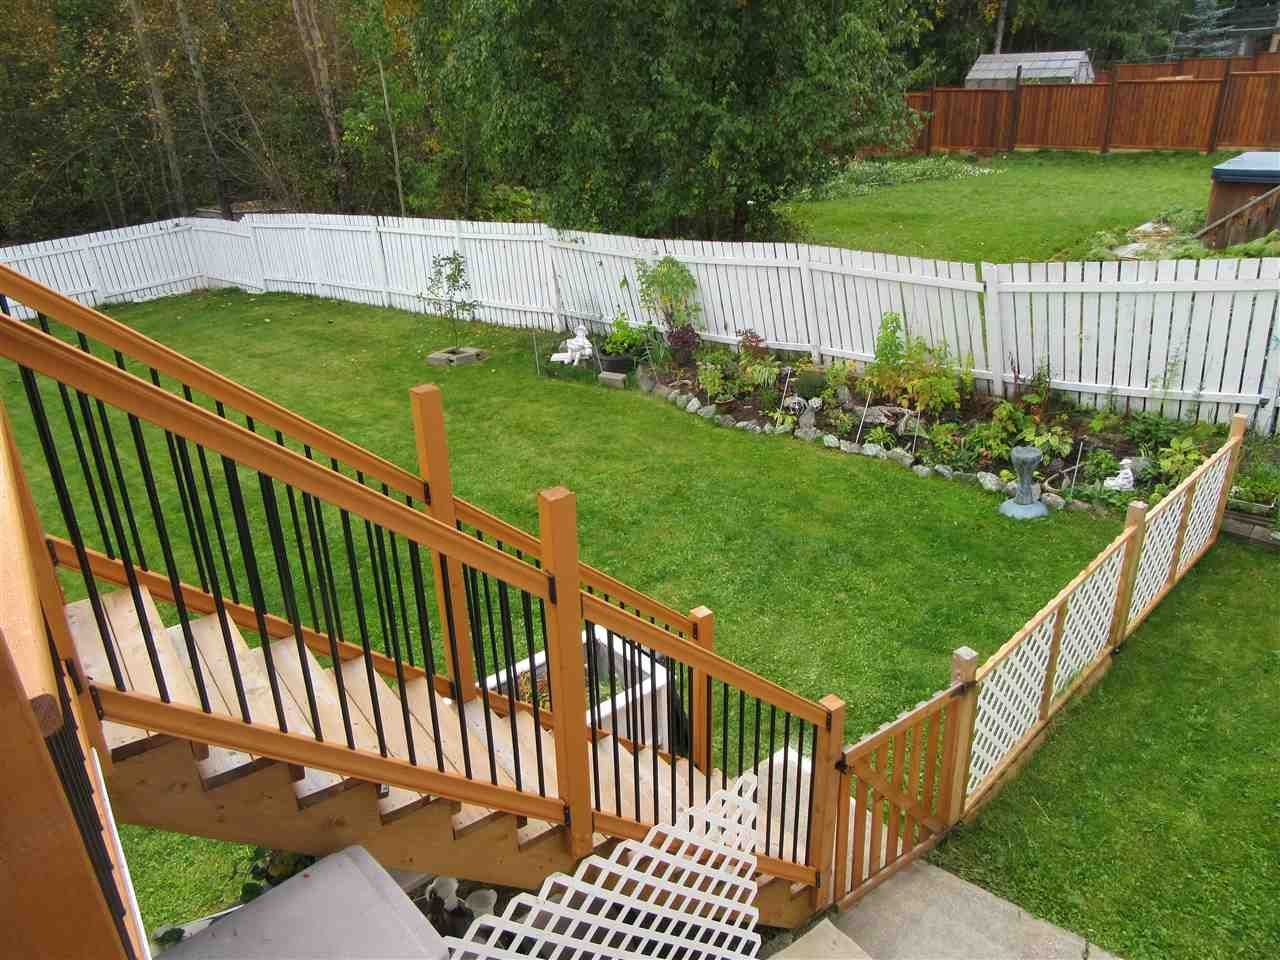 """Photo 5: Photos: 4305 FOSTER Road in Prince George: Charella/Starlane House for sale in """"CHARELLA/STARLANE"""" (PG City South (Zone 74))  : MLS®# R2499513"""